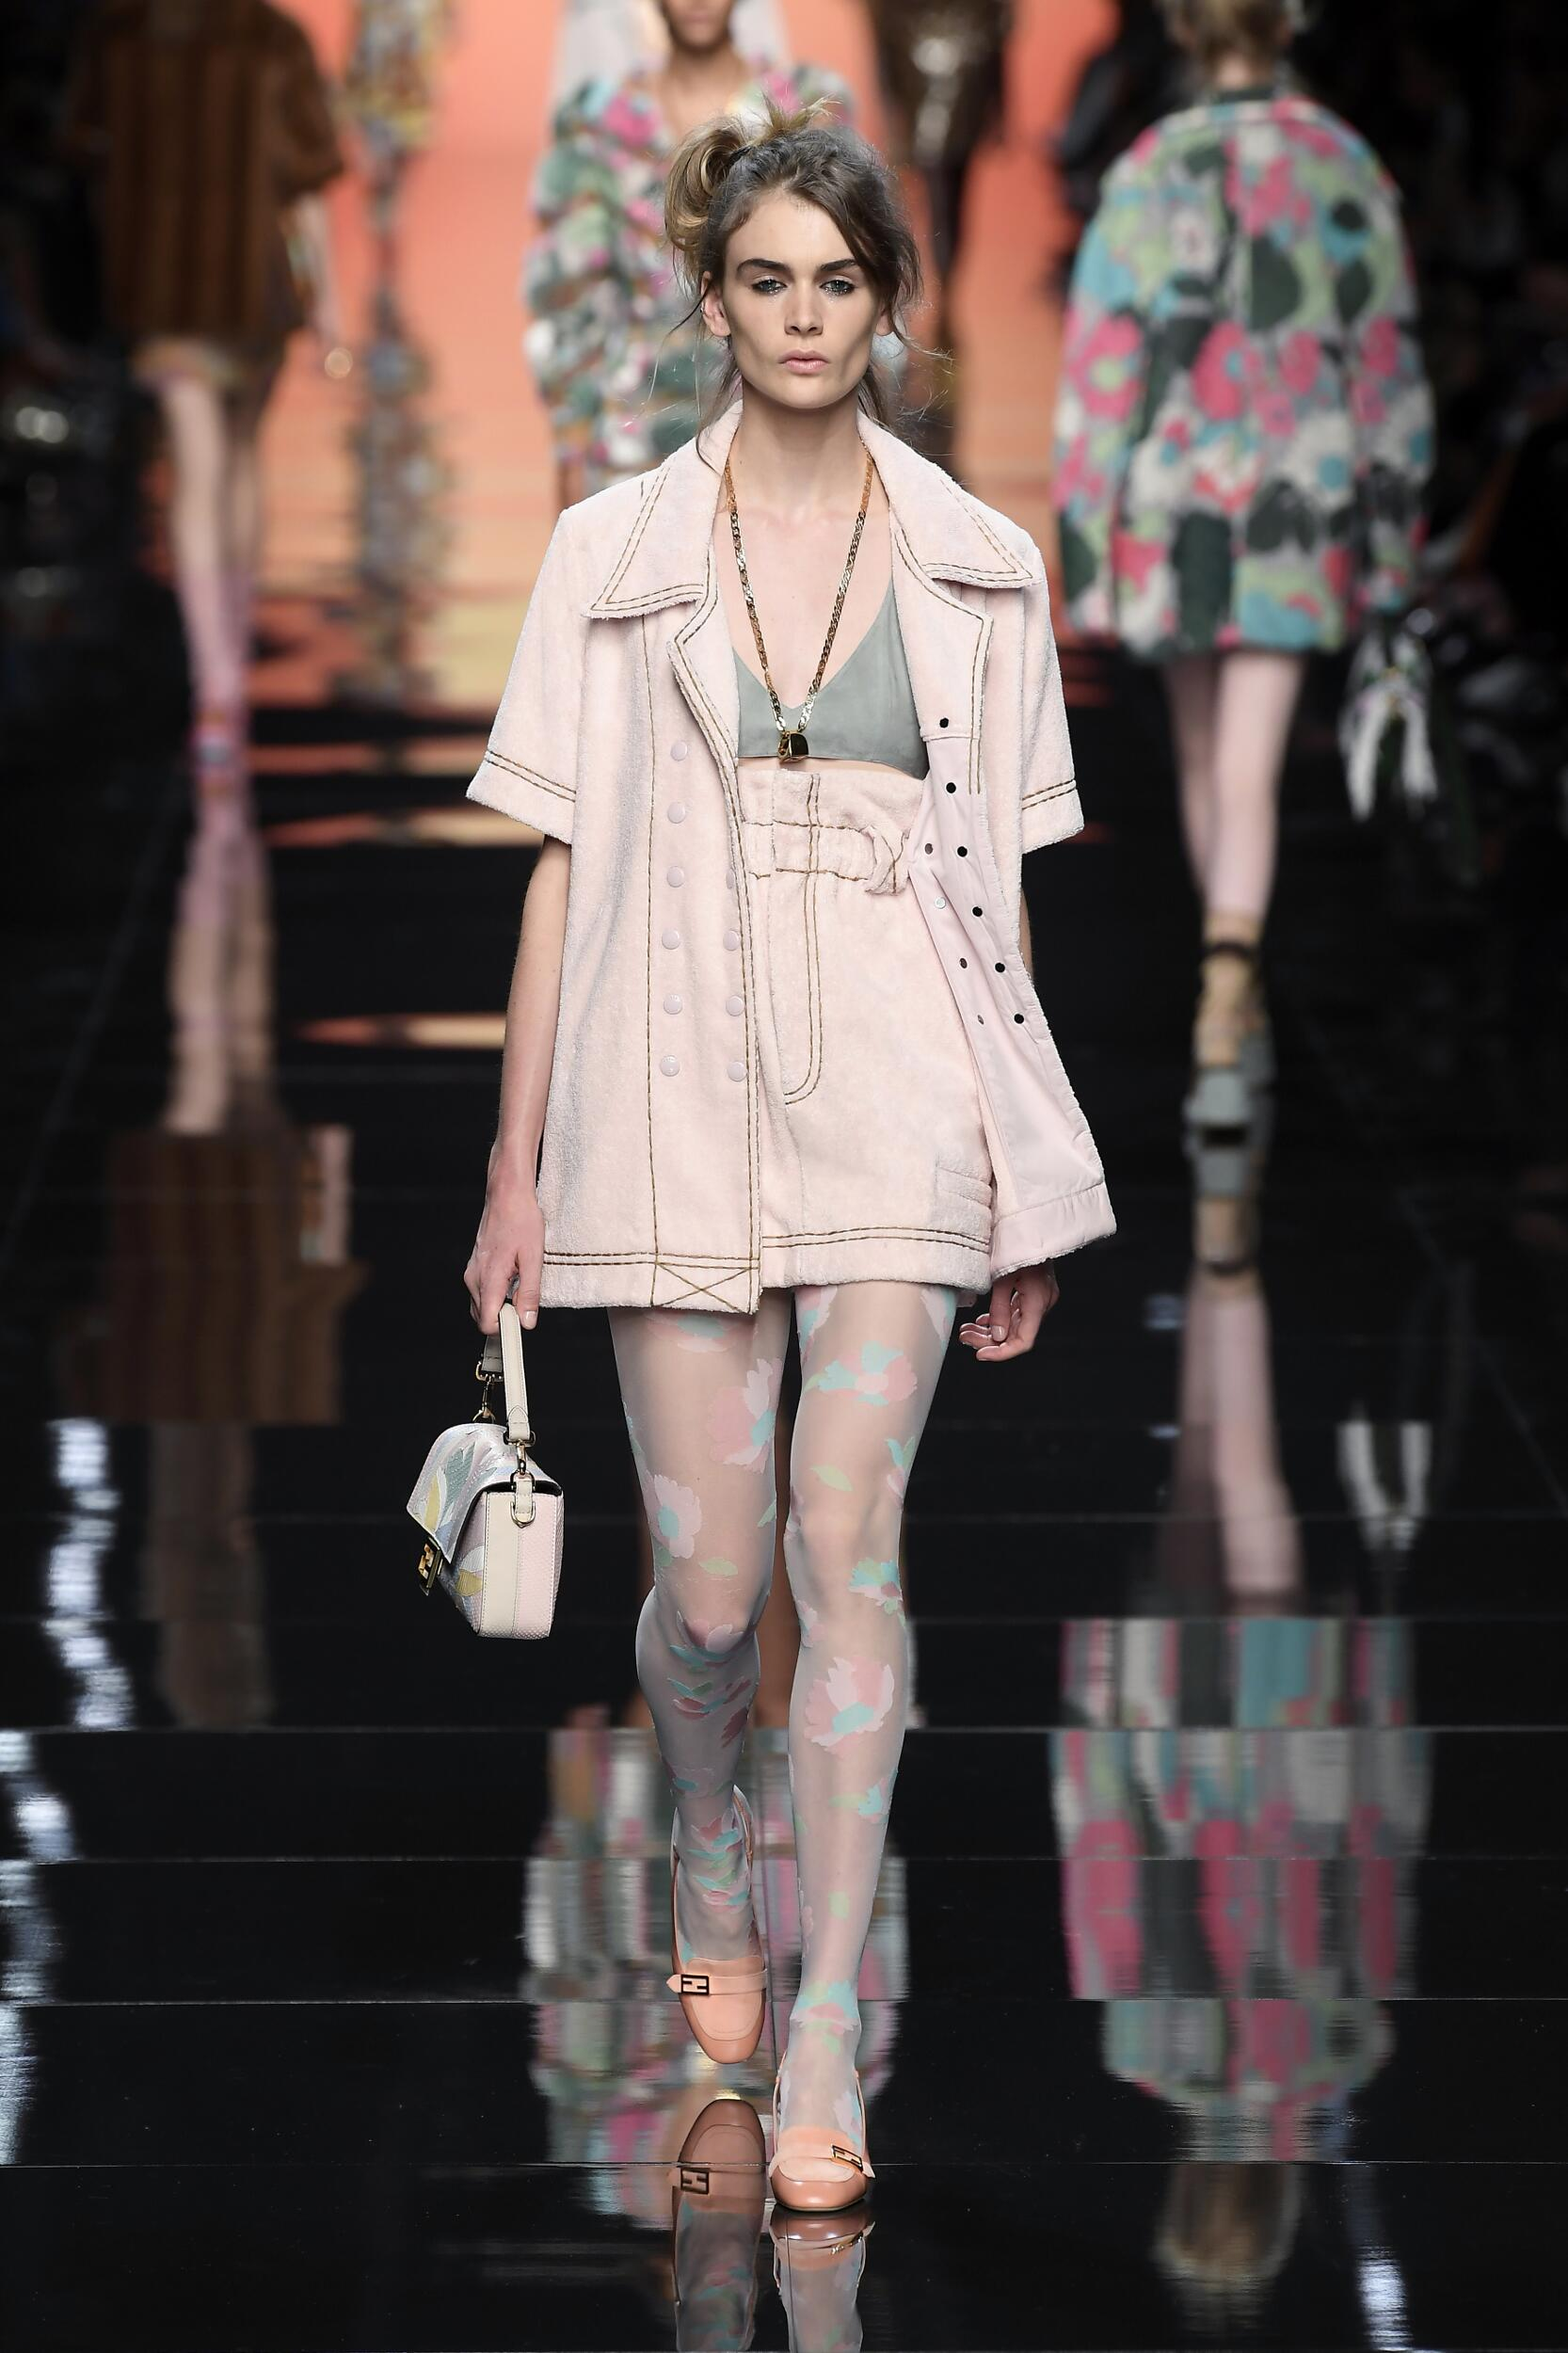 FENDI SPRING SUMMER 2020 WOMEN'S COLLECTION | The Skinny Beep